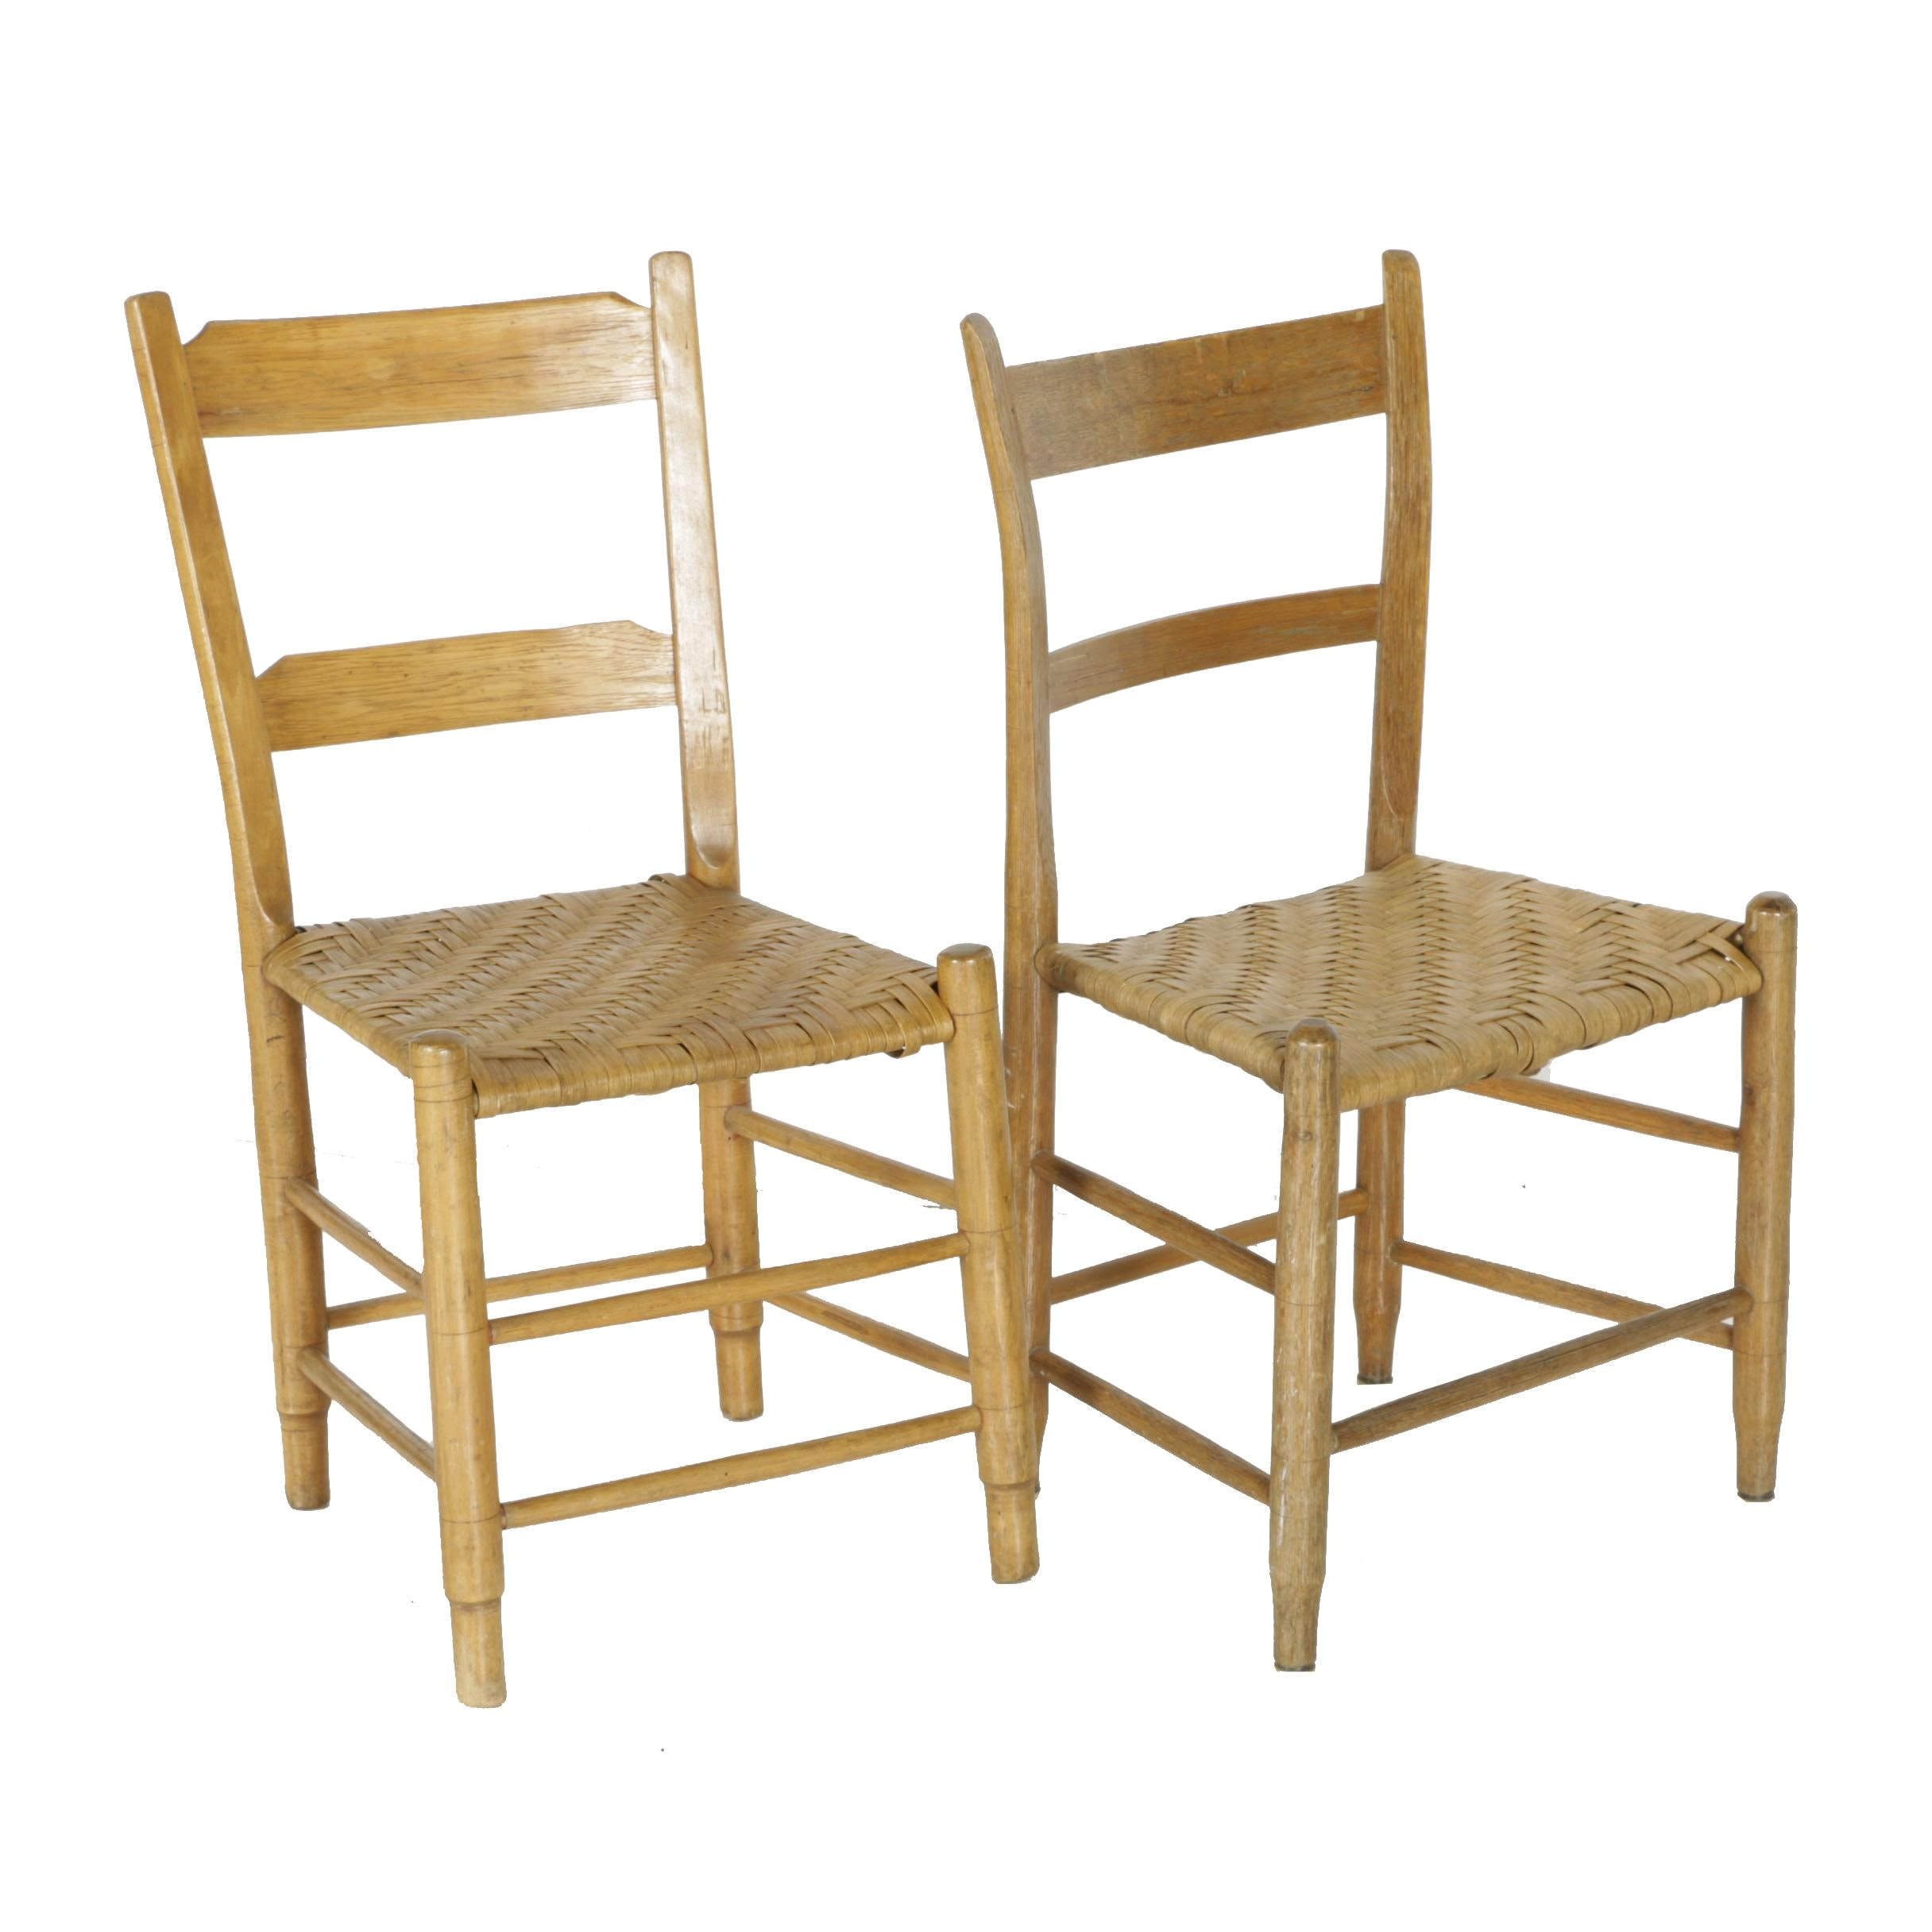 Antique Ladderback Side Chairs With Splint Seats